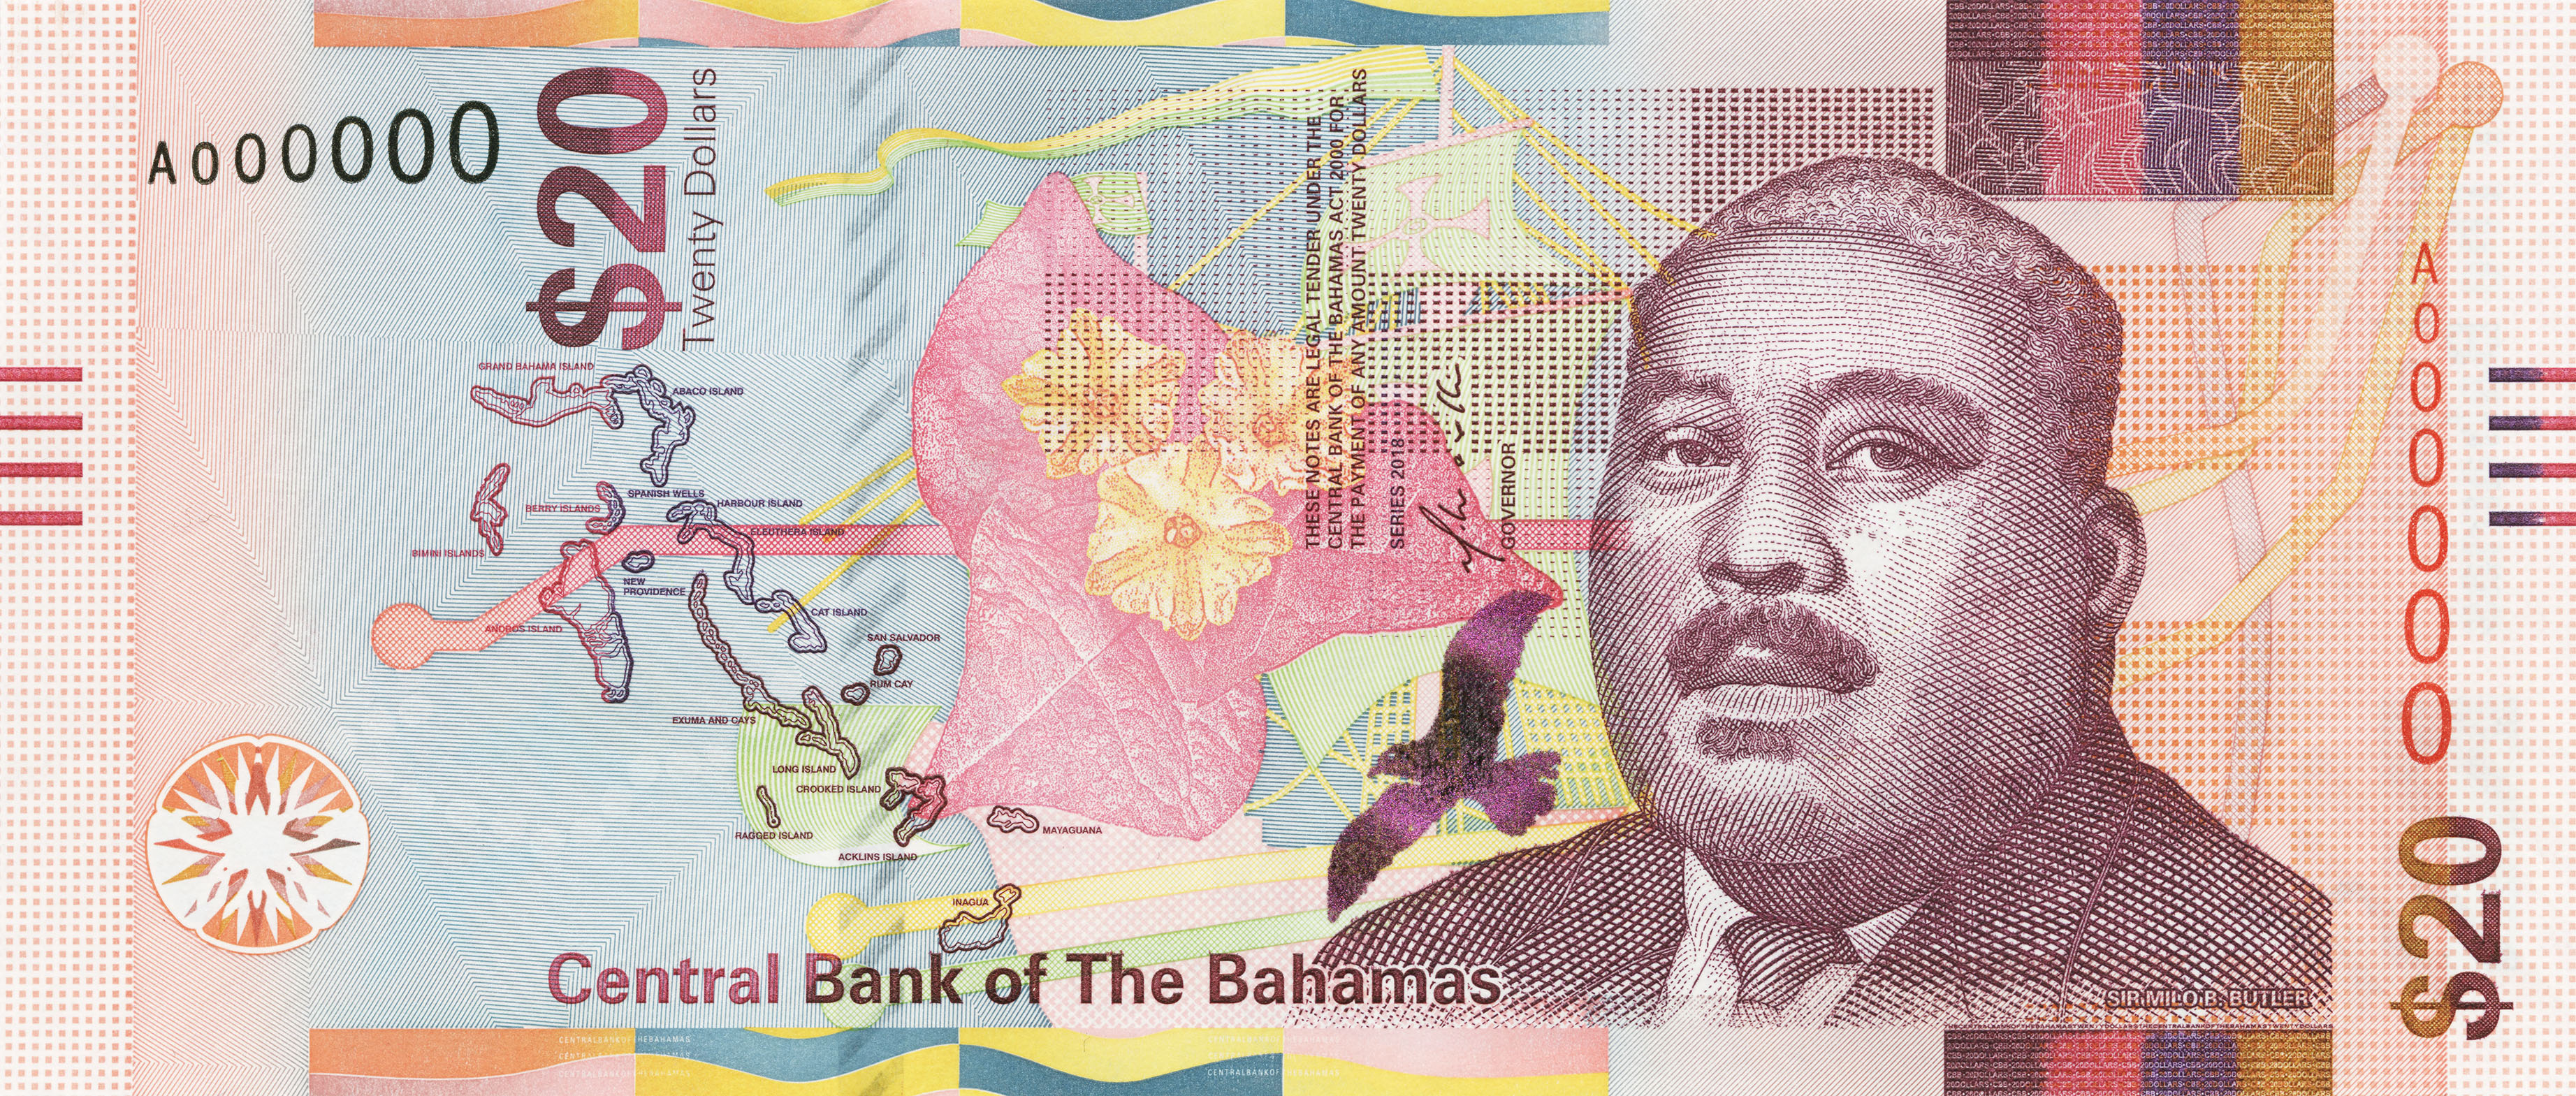 The Central Bank Of Bahamas Launches 20 As Part Their New Banknote Family With De La Rue S Active Security Thread